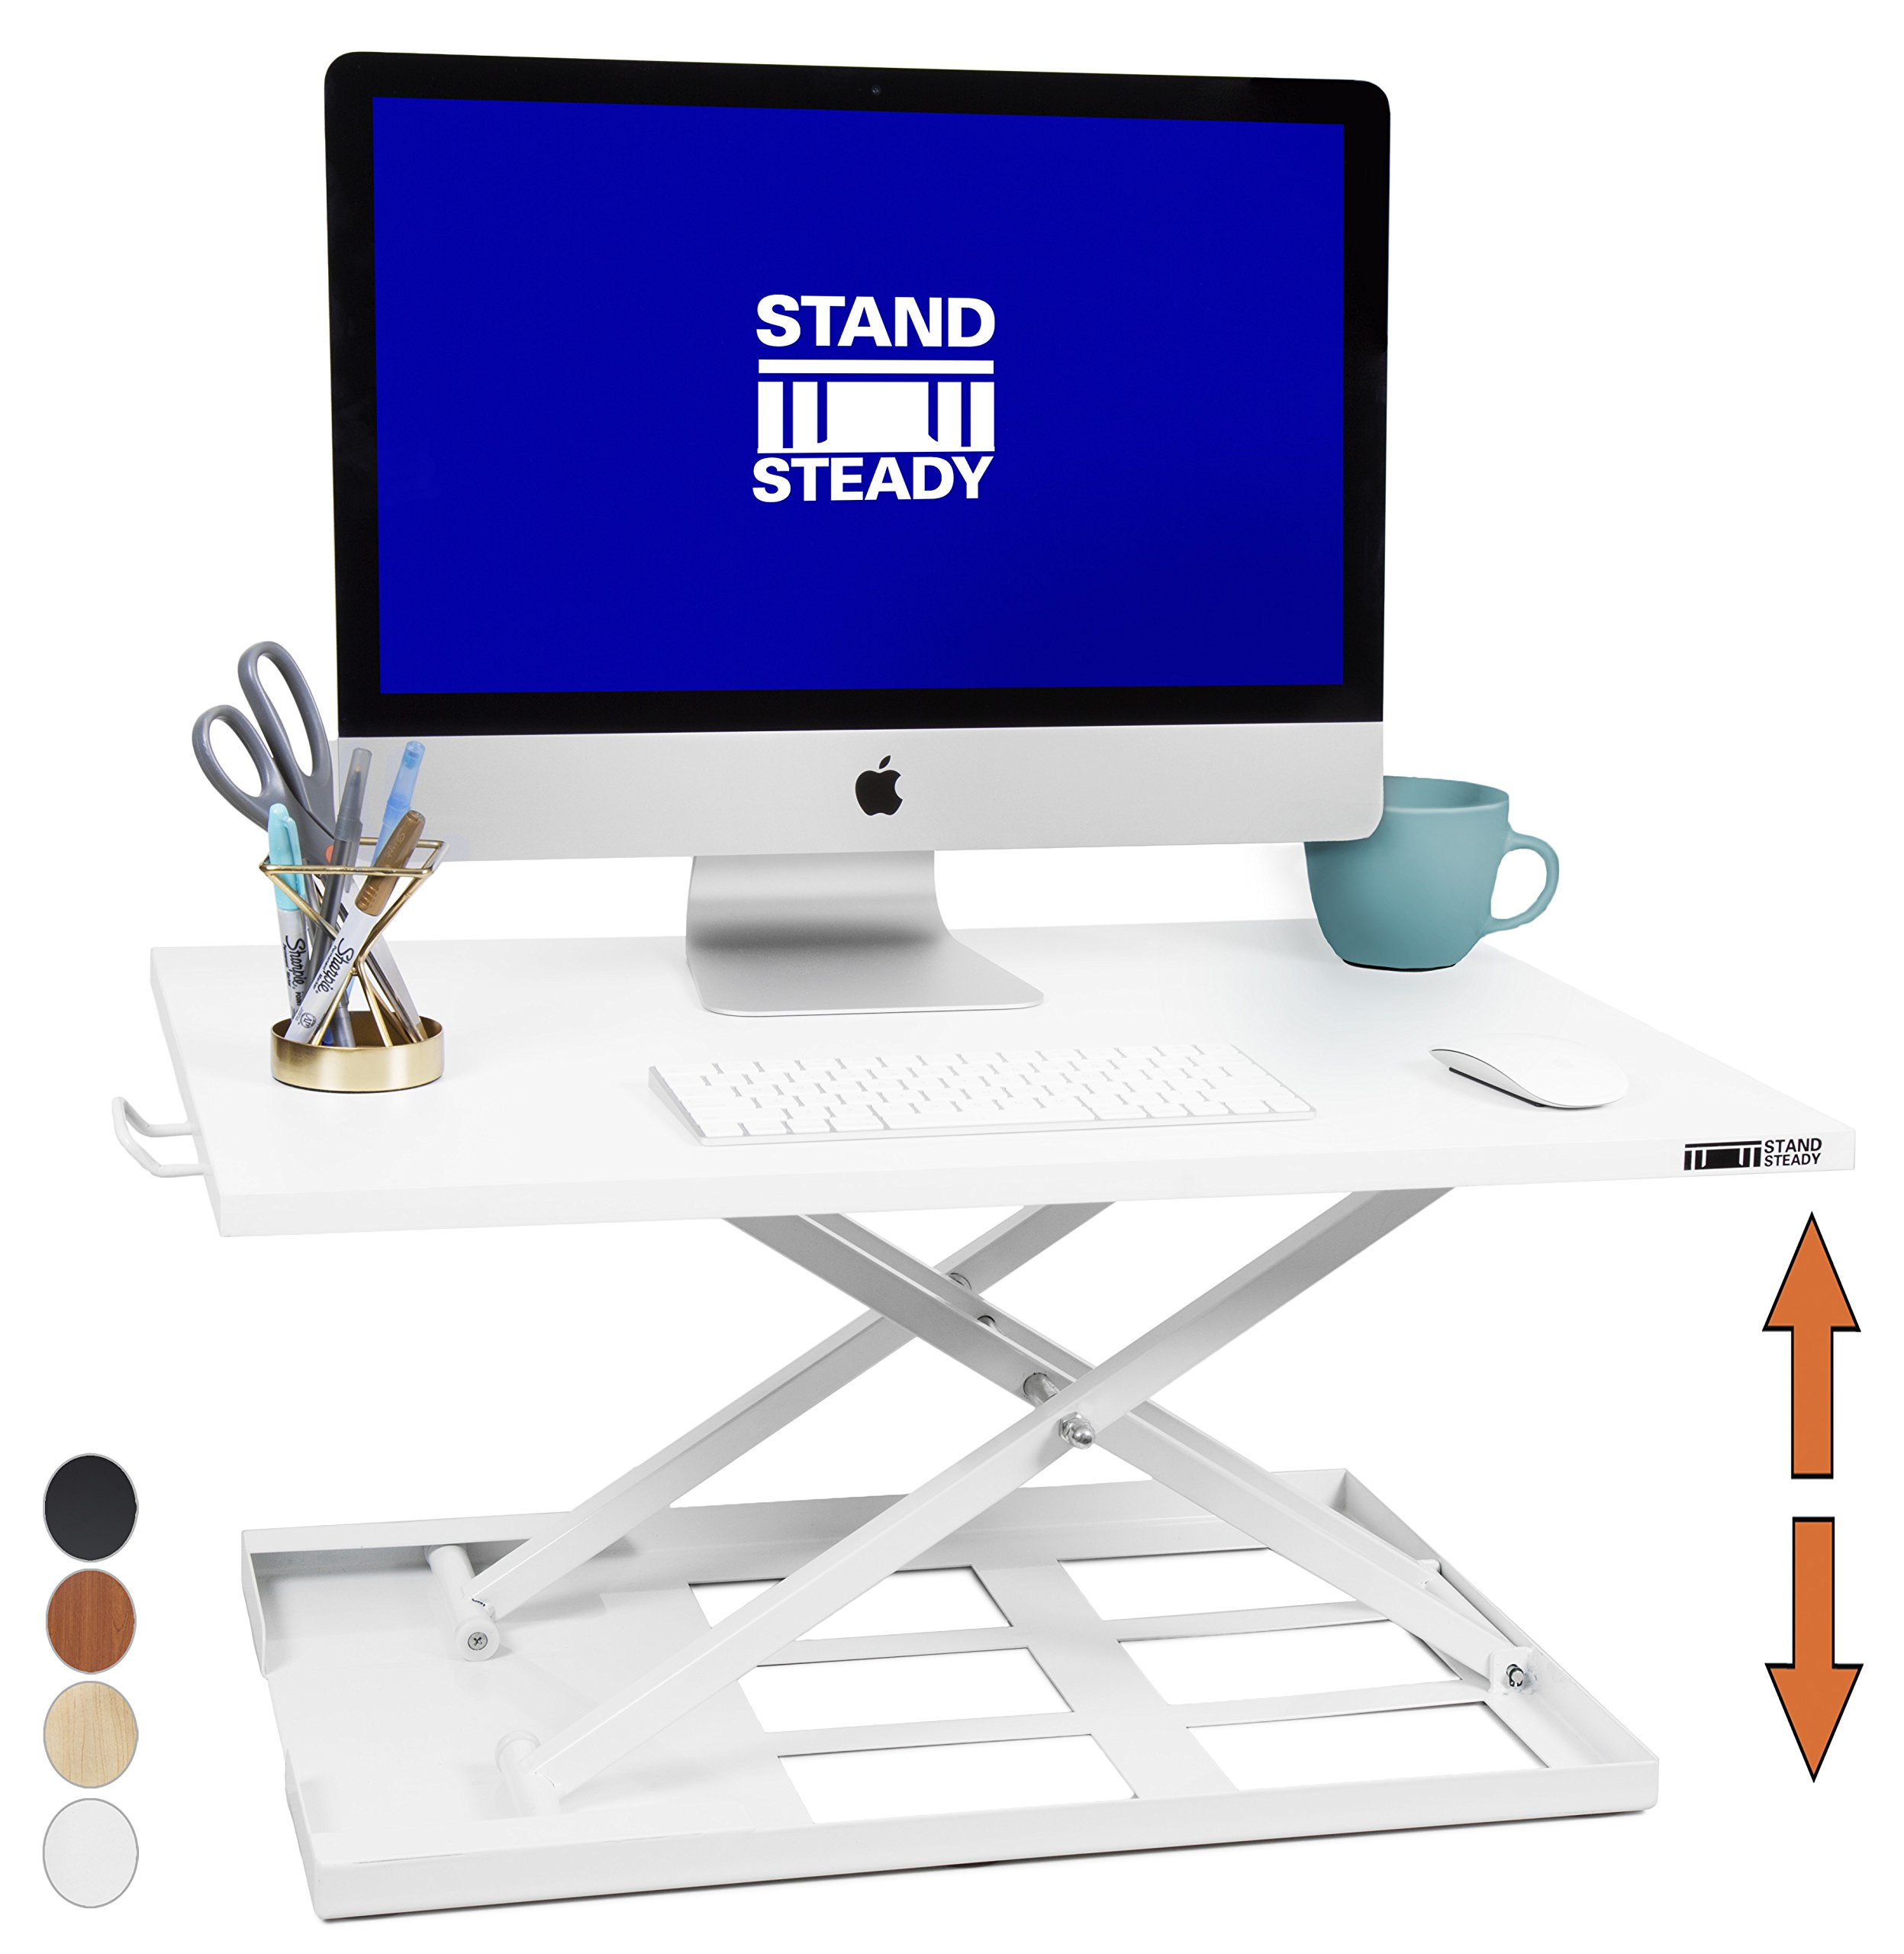 Standing Desk X-Elite - Stand Steady Standing Desk | X-Elite Pro Version, Instantly Convert Any Desk into a Sit/Stand up Desk, Height-Adjustable, Fully Assembled Desk Converter (White)